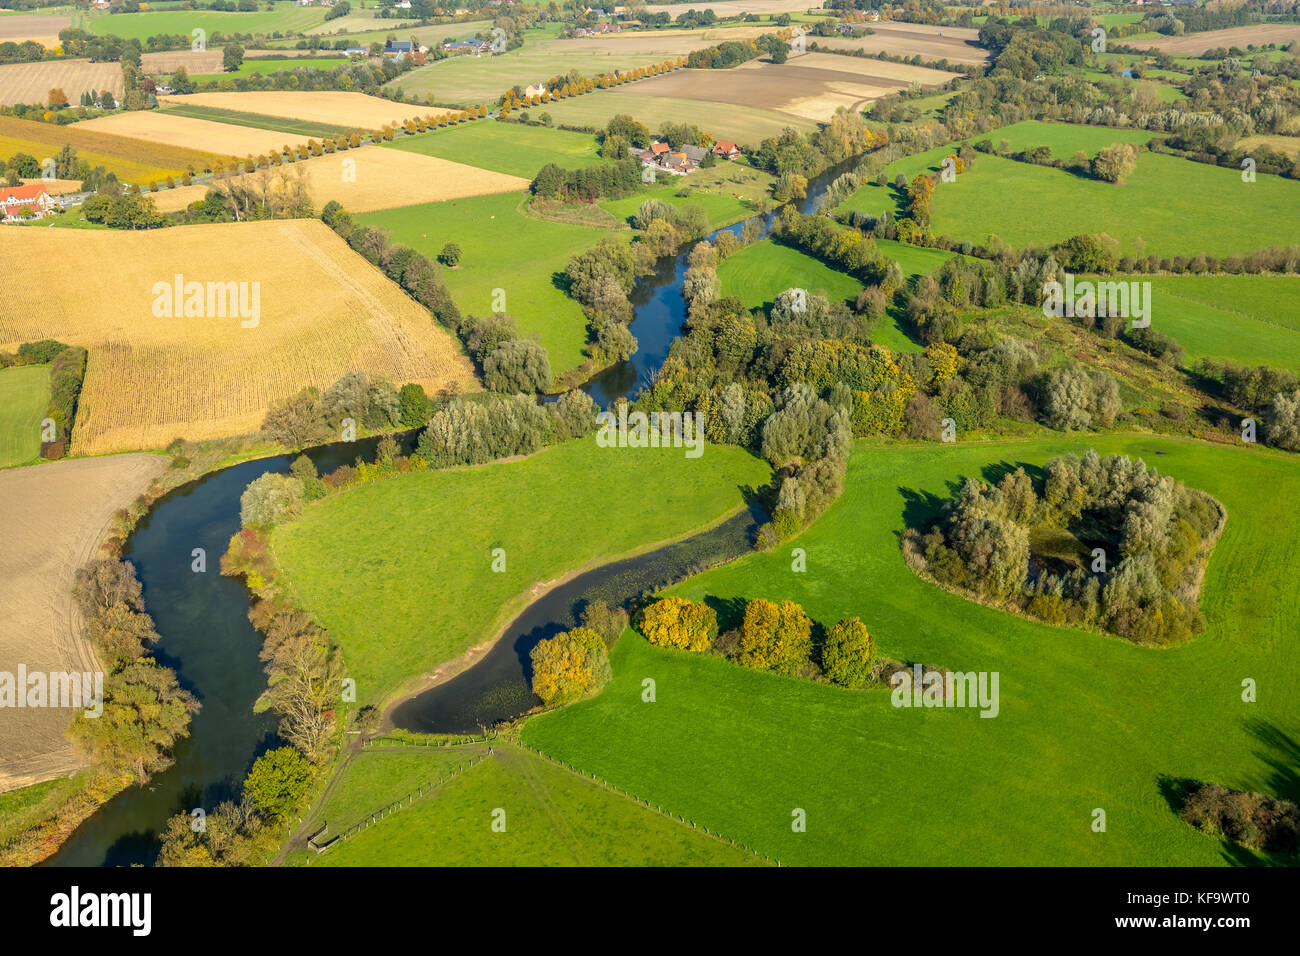 Lippe meander on the town borders between Werne and Bergkamen, lippe oxbow lake, river Lippe, nature reserve, Lippeauen, - Stock Image